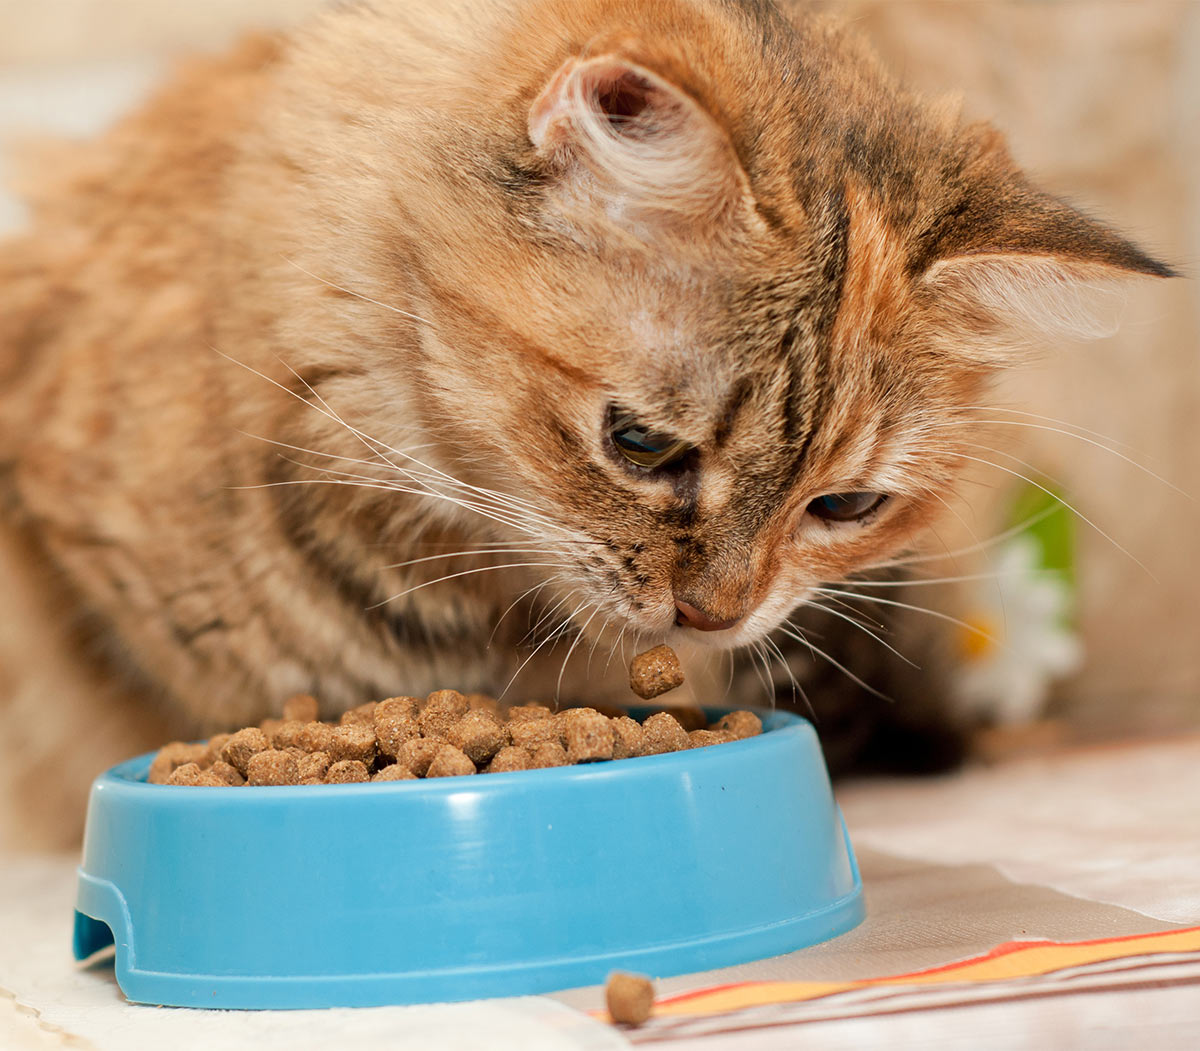 Grain Free Dry Cat Food For Diabetic Cats